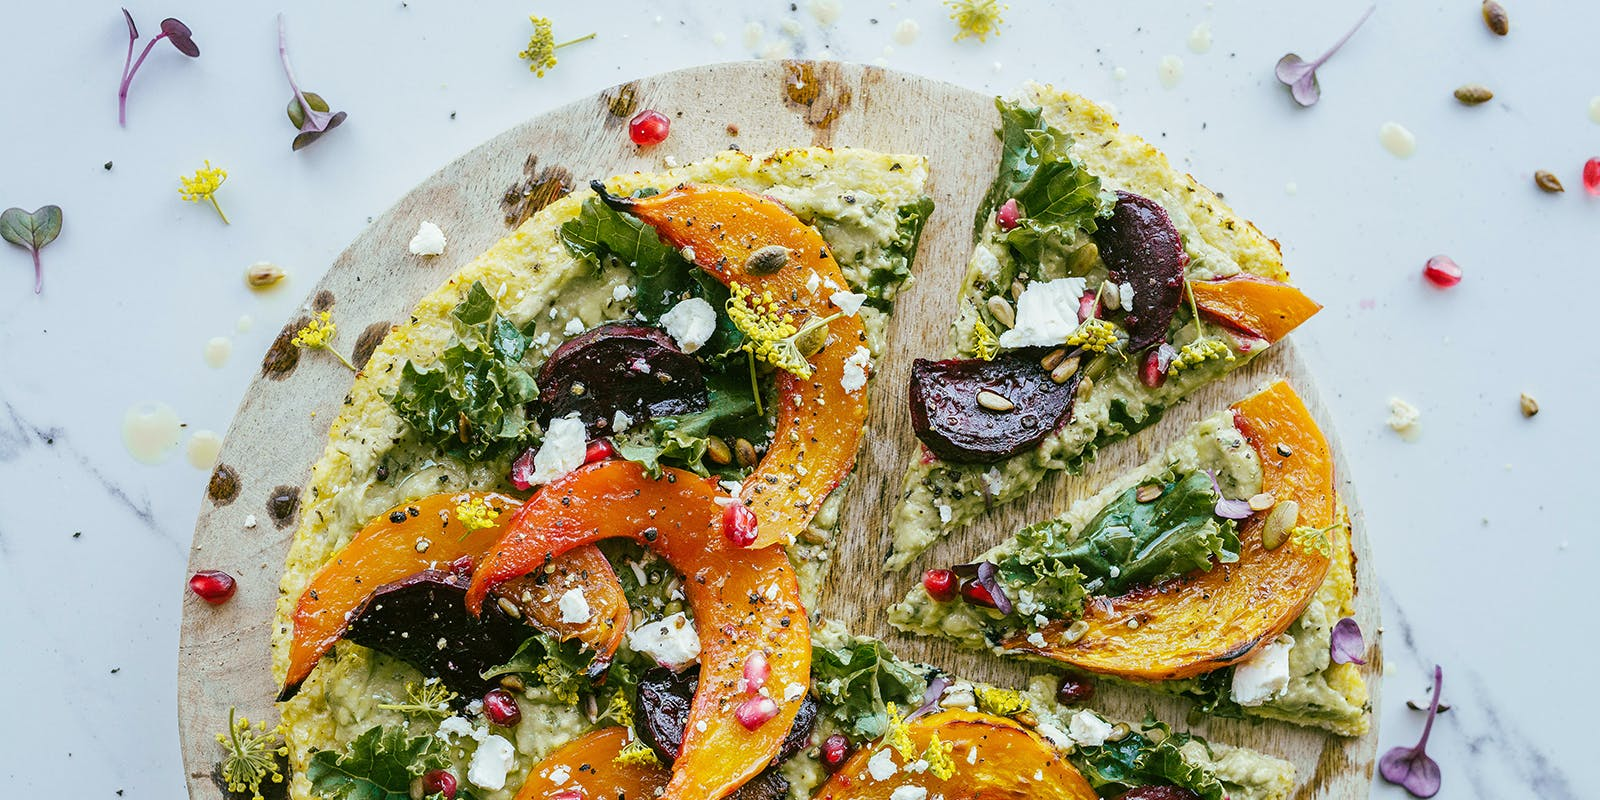 Cauliflower galette with avocado cream and roasted vegetables